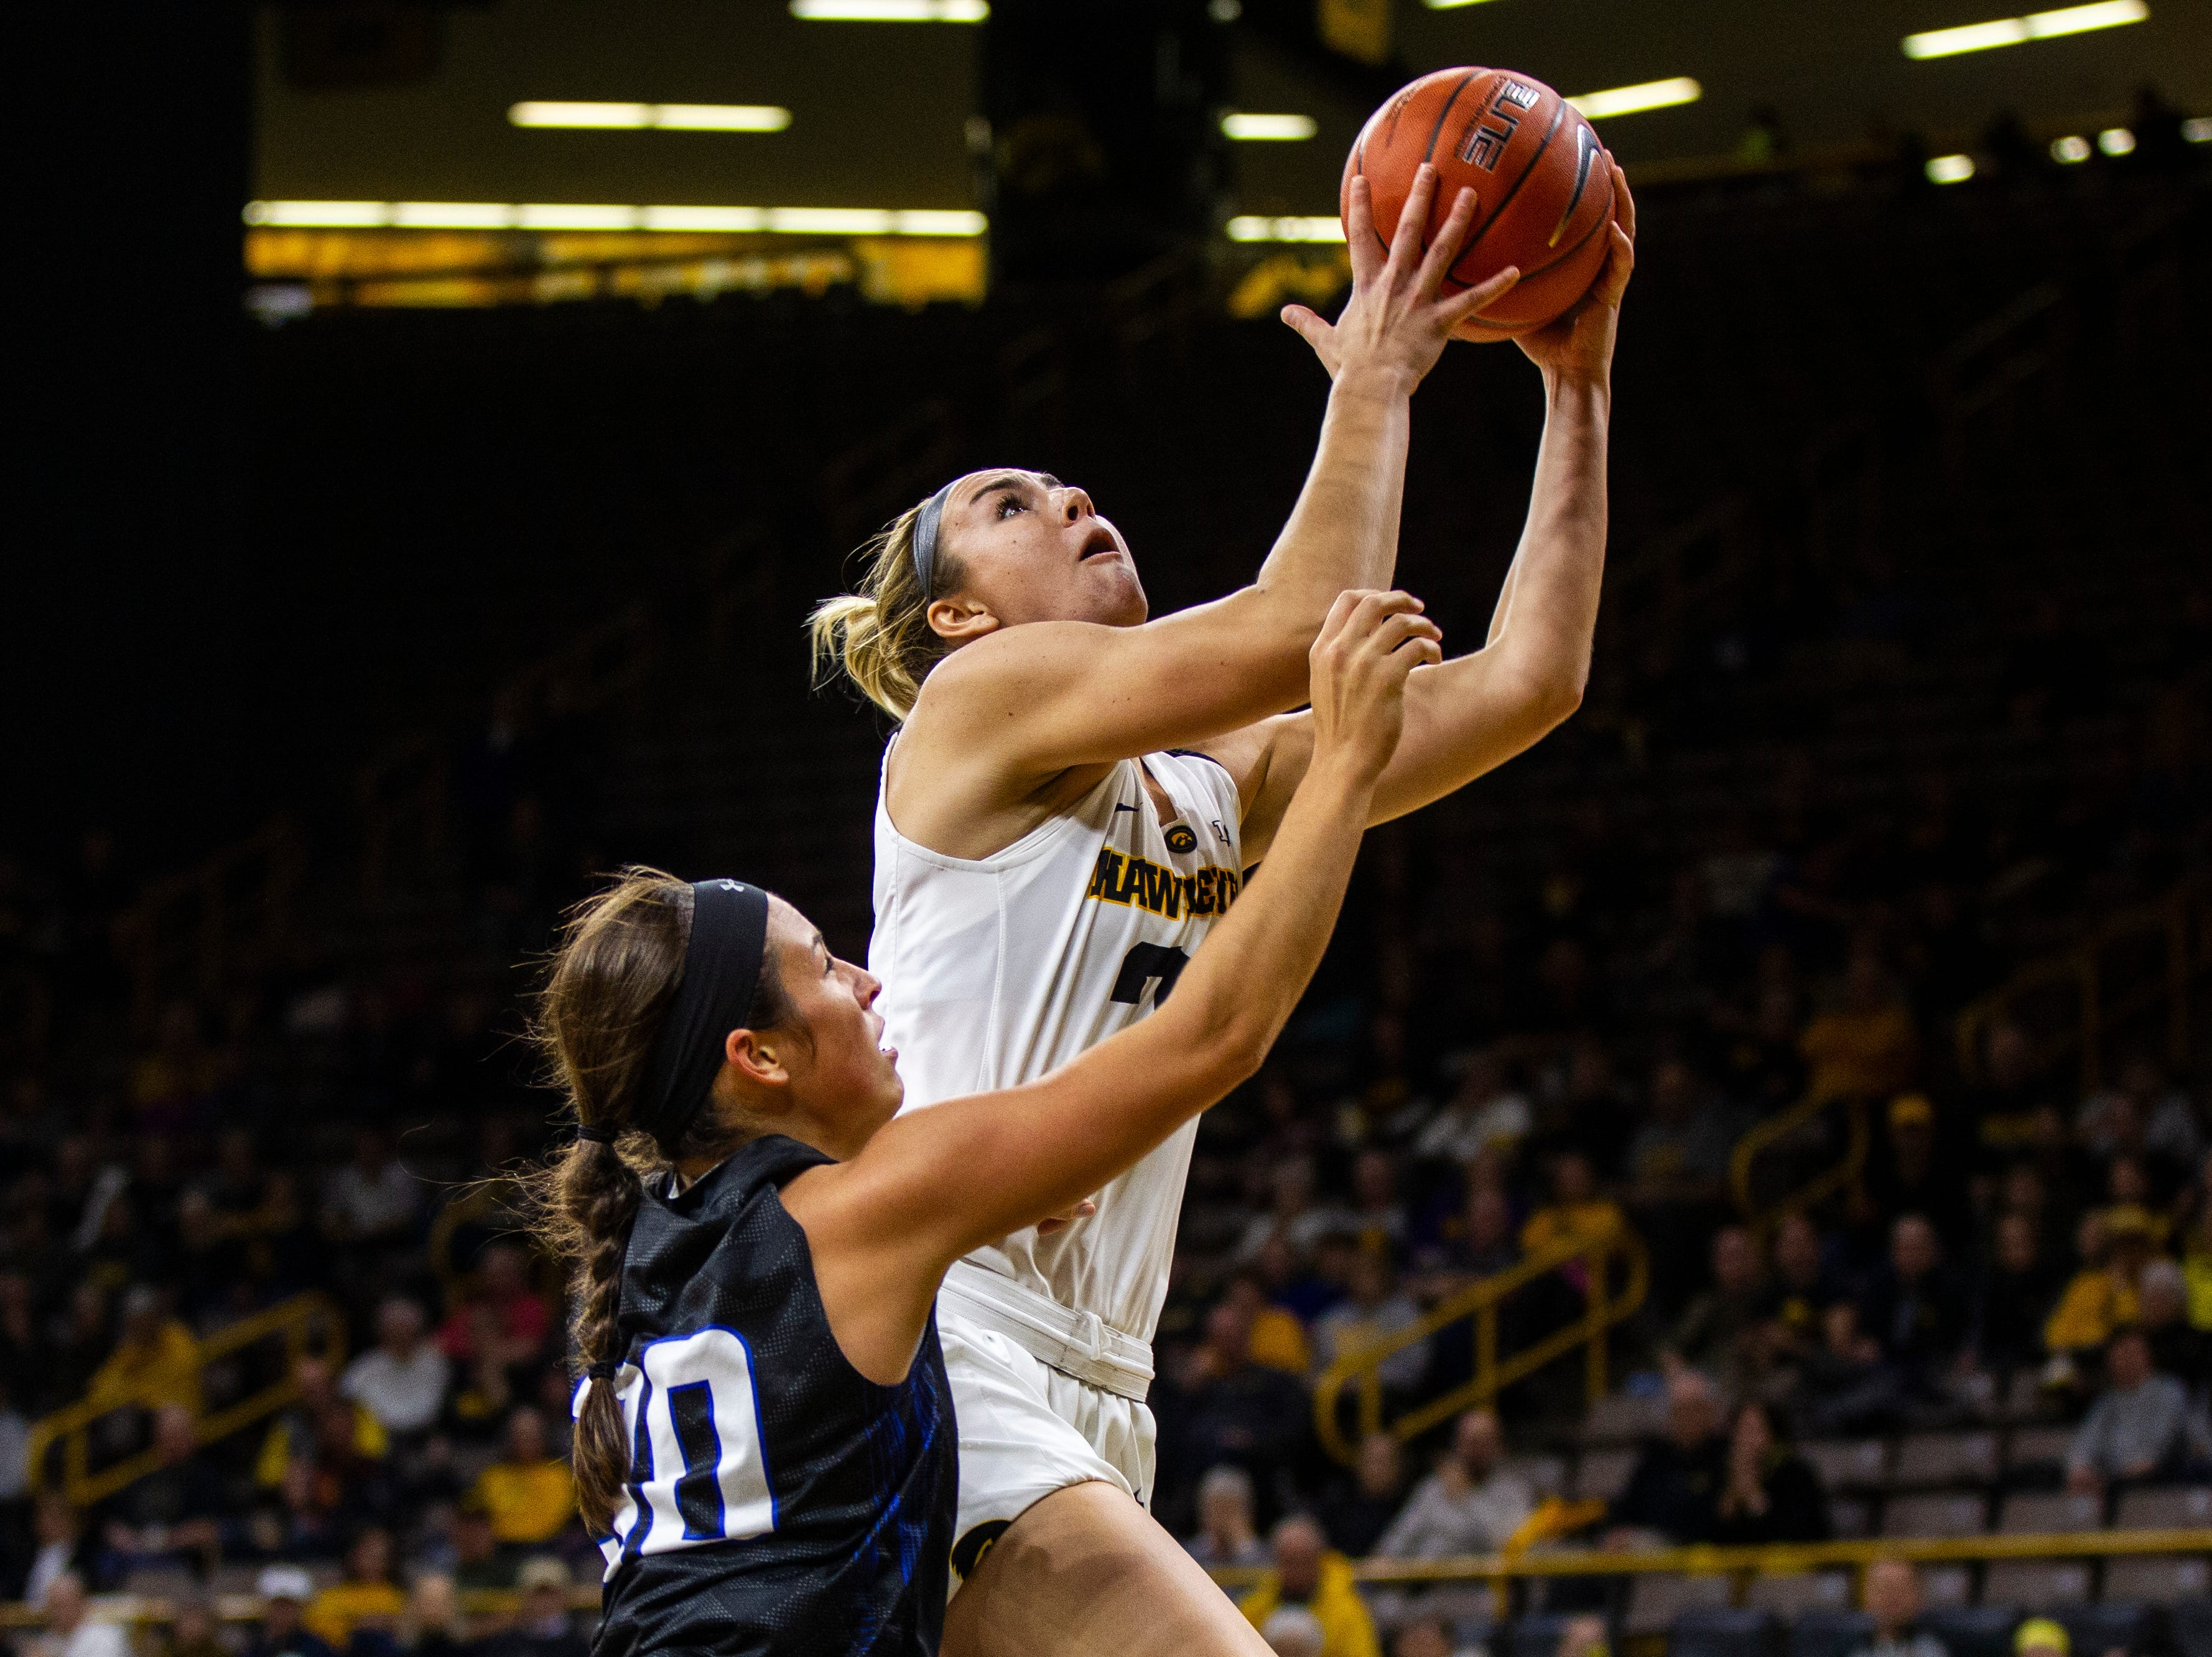 Iowa forward Hannah Stewart (21) attempts a layup during a women's basketball exhibition basketball game on Tuesday, Nov. 6, 2018, at Carver-Hawkeye Arena in Iowa City.